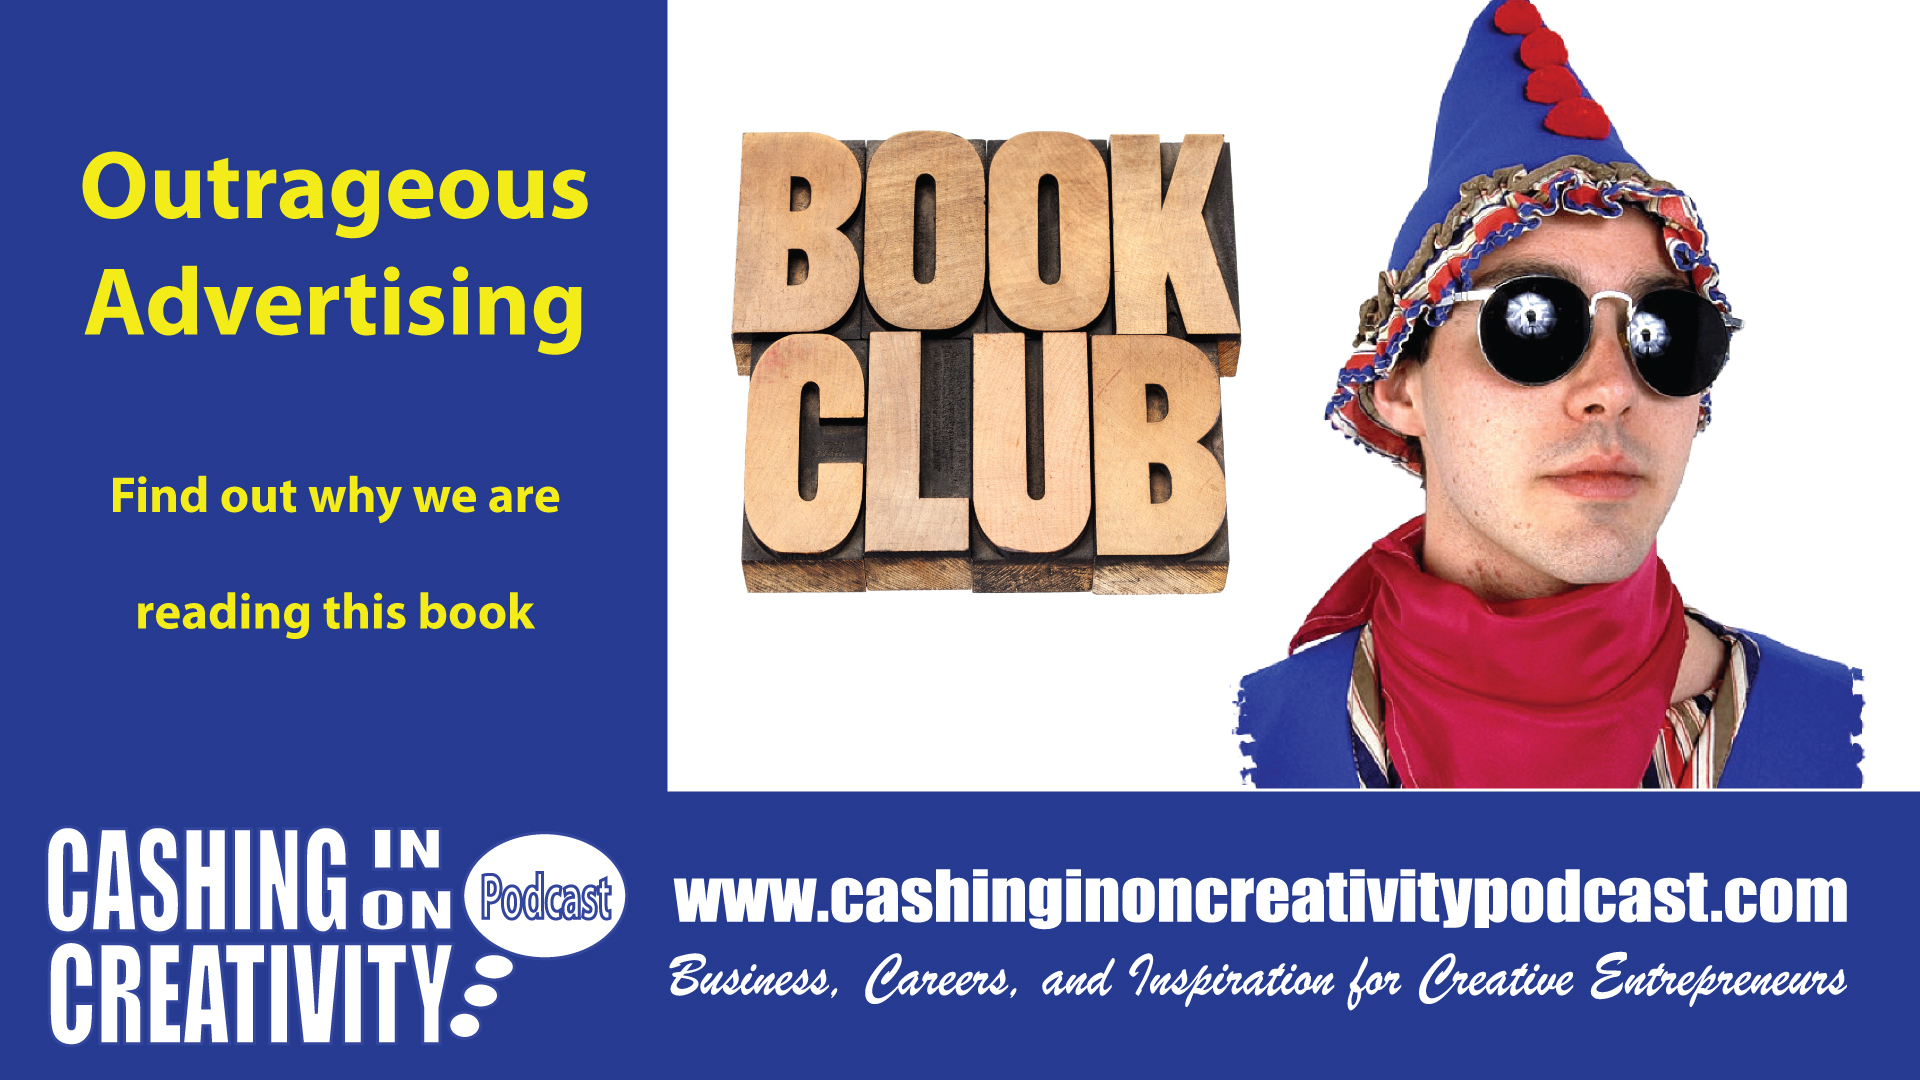 CC250 Outrageous Advertising: Book Club Episode